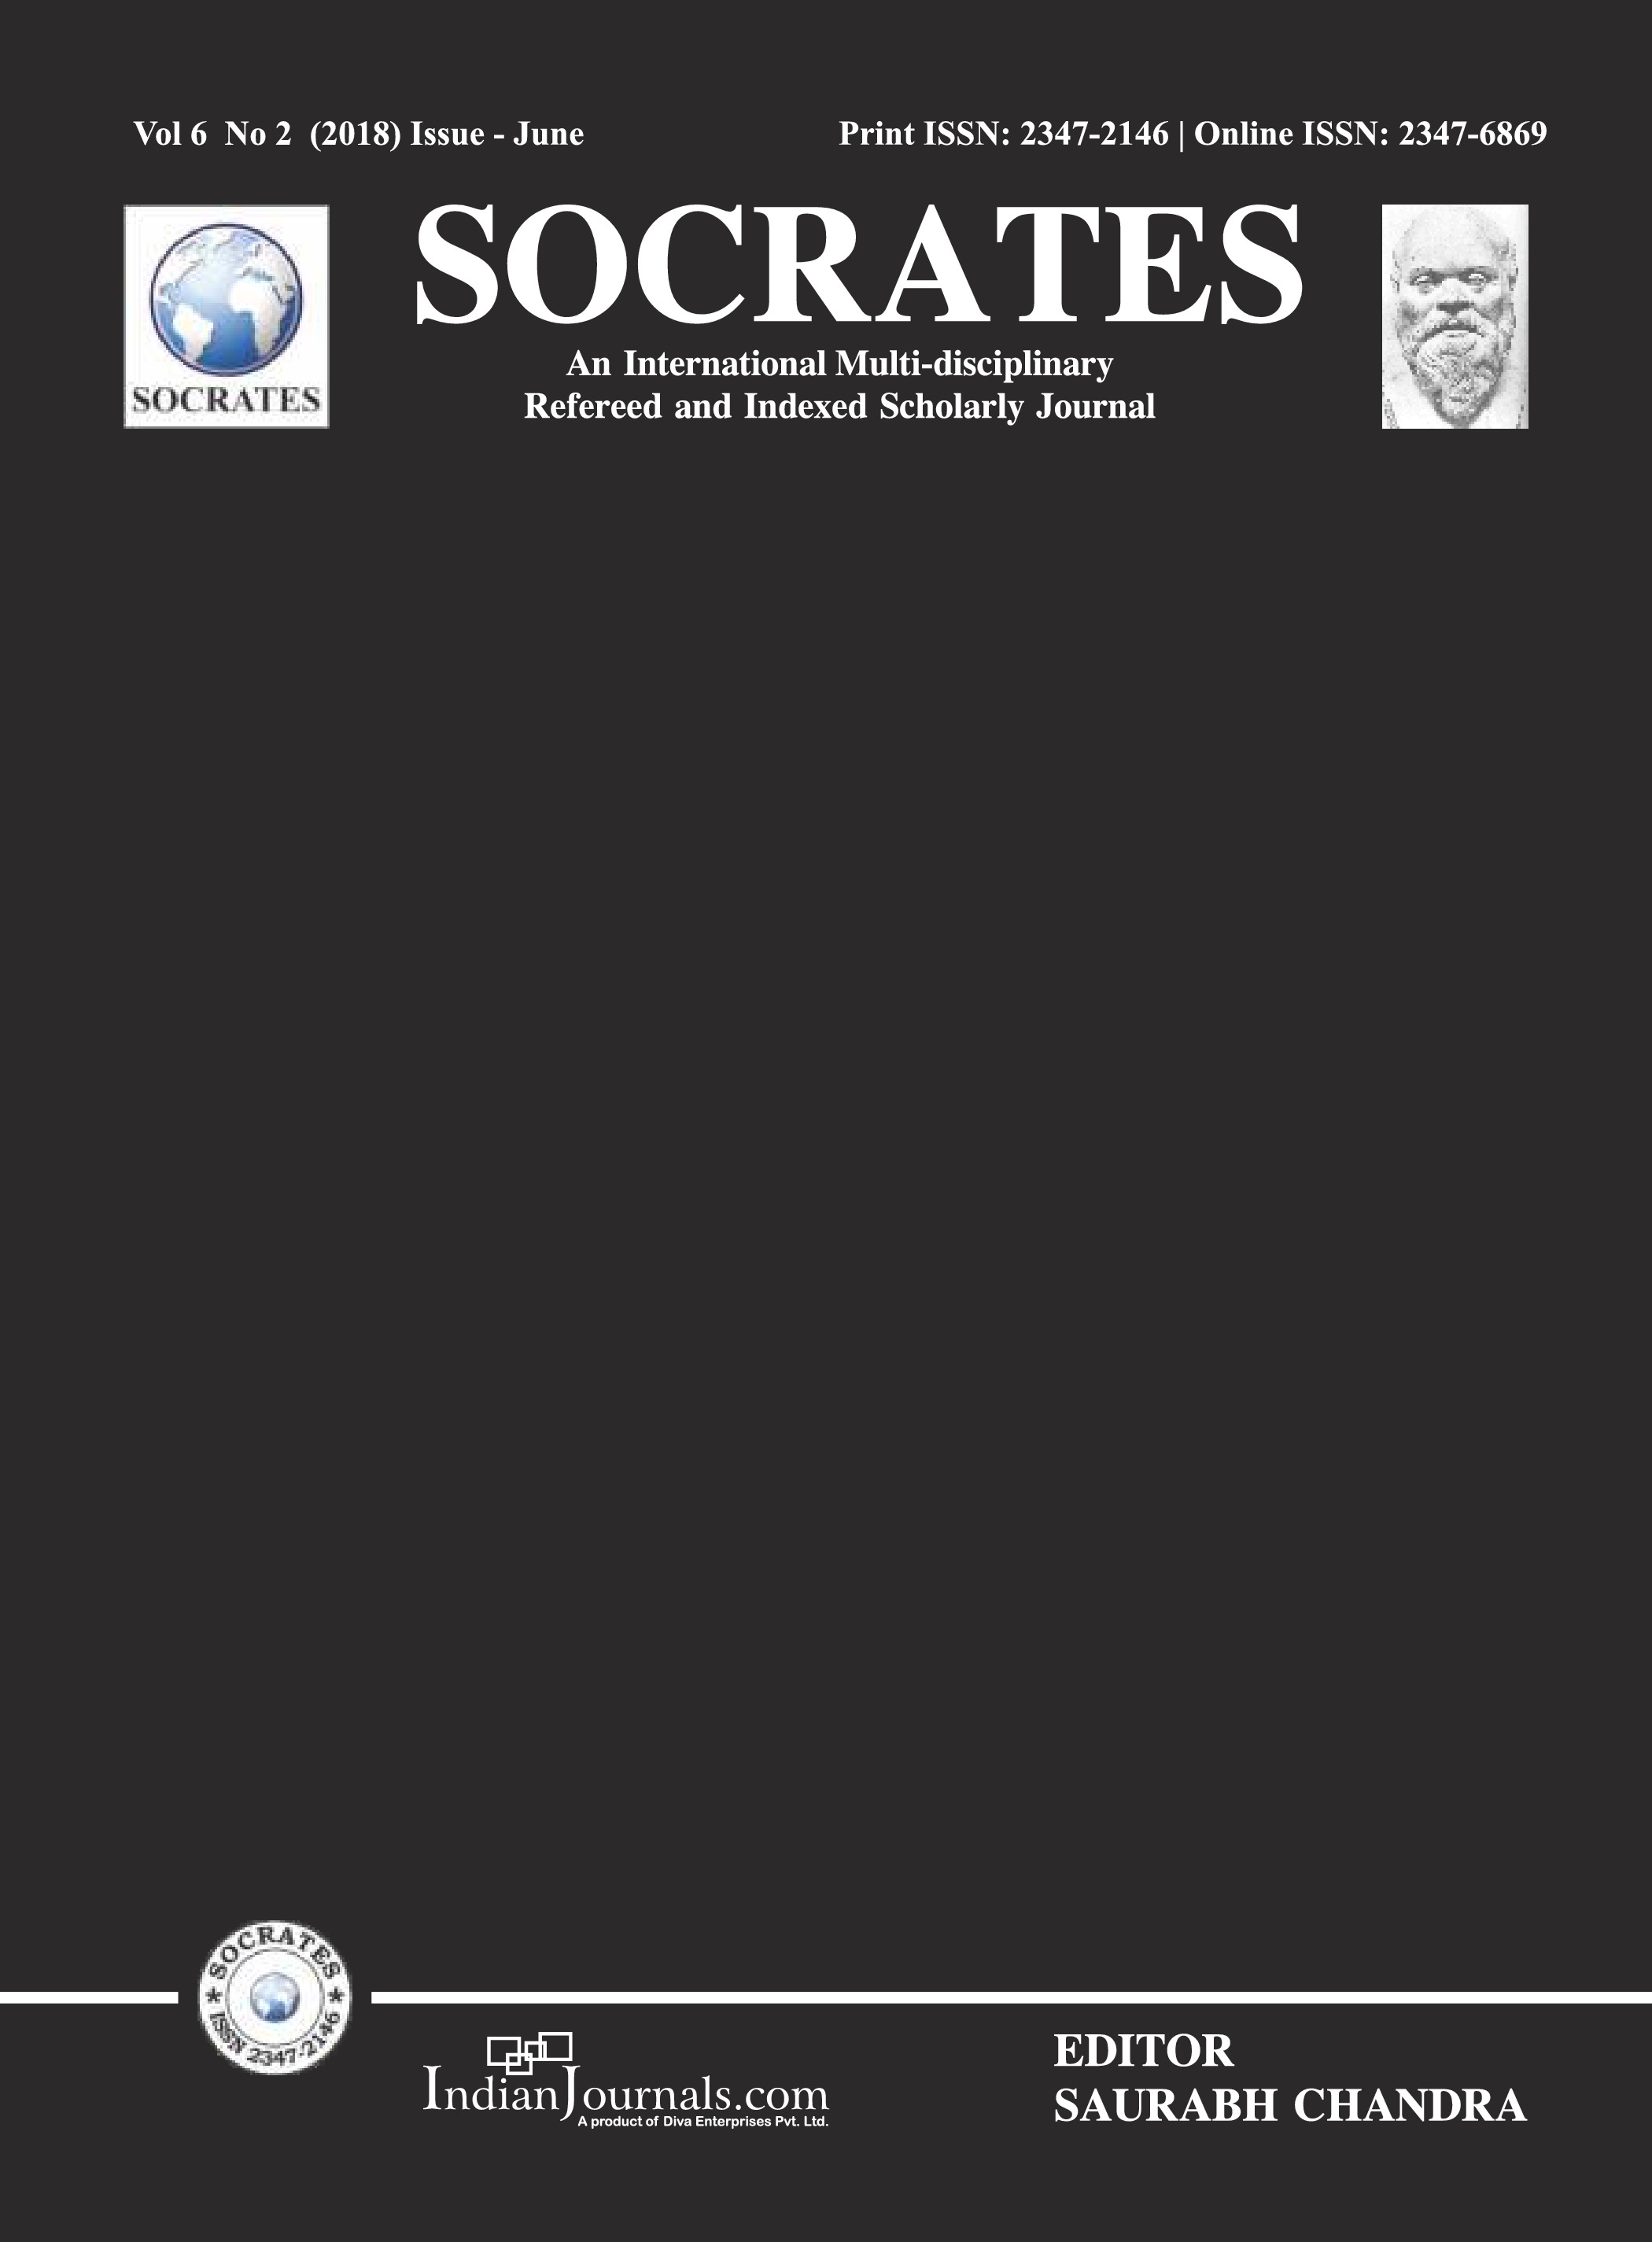 SOCRATES VOL 6 NO 2 (2018) ISSUE JUNE COVER